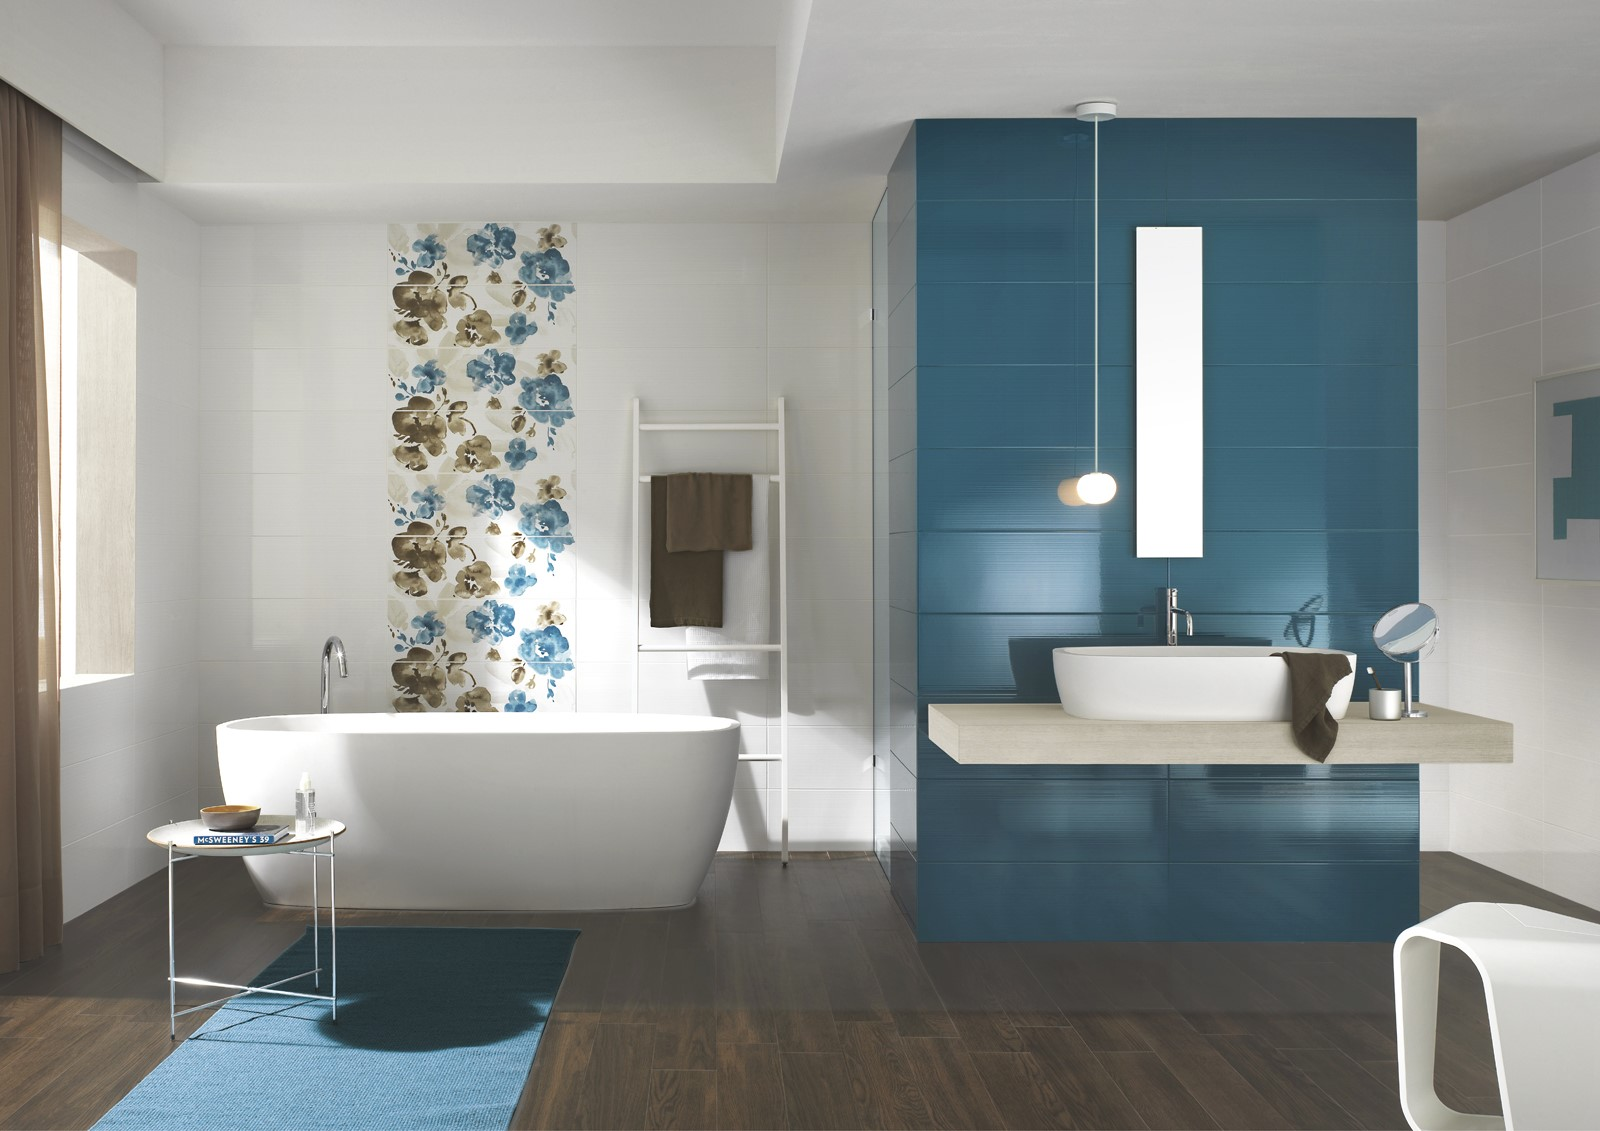 Bathroom concept d tile warehouse for Carrelage salle de bain bleu turquoise